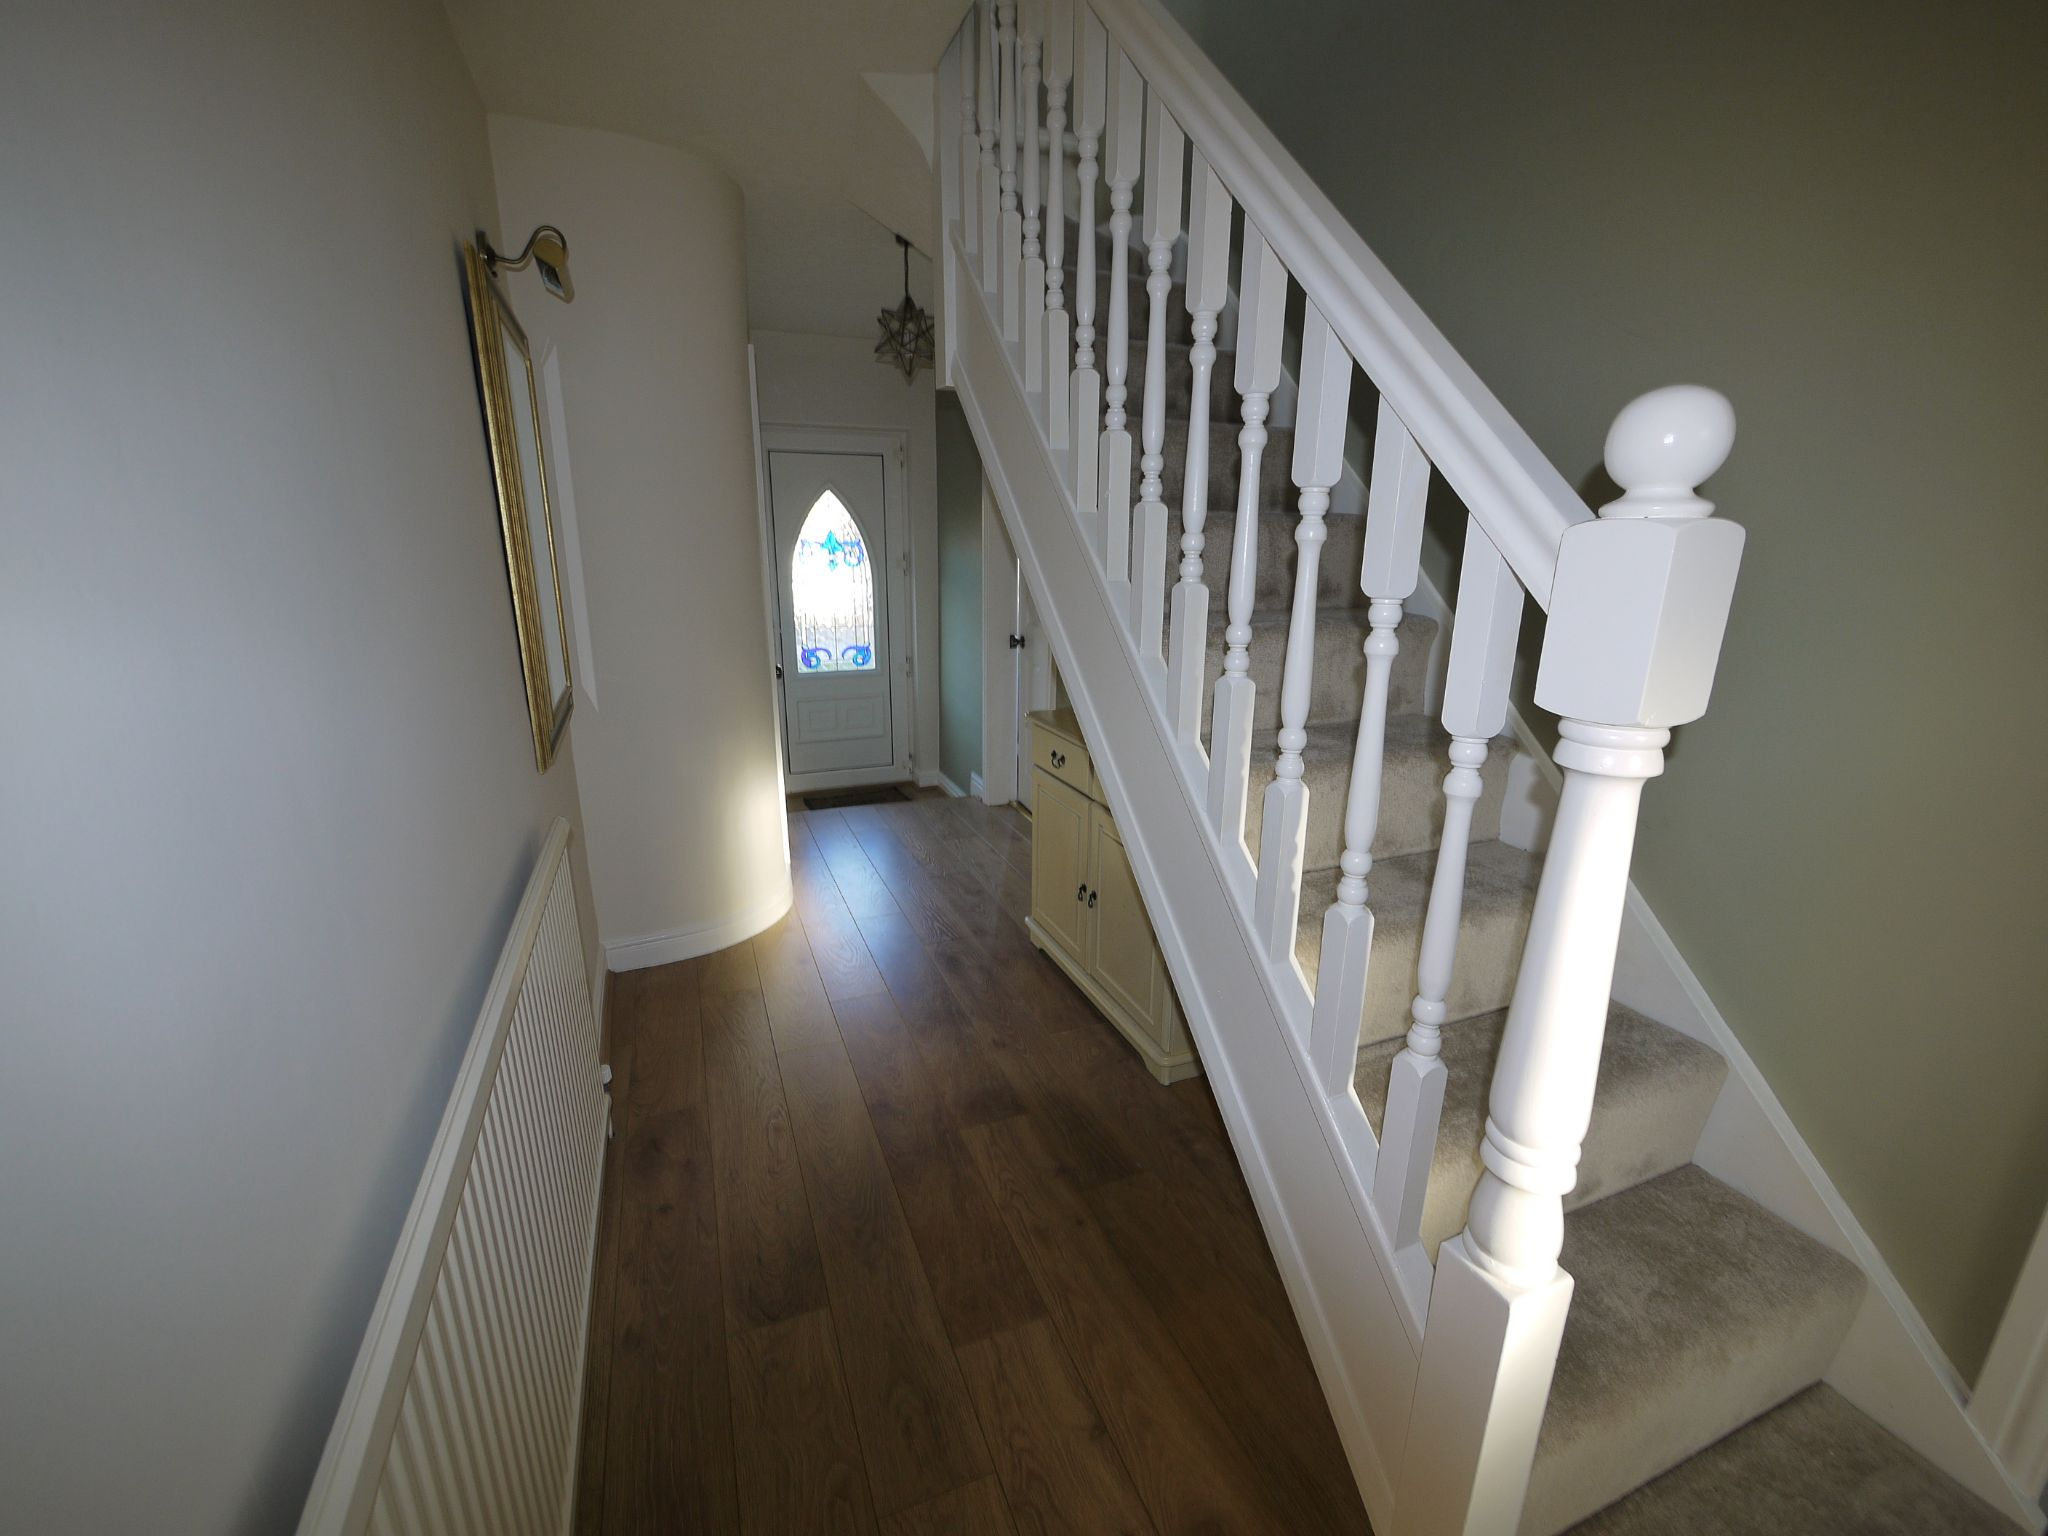 5 bedroom detached bungalow For Sale in Brighouse - hallway.